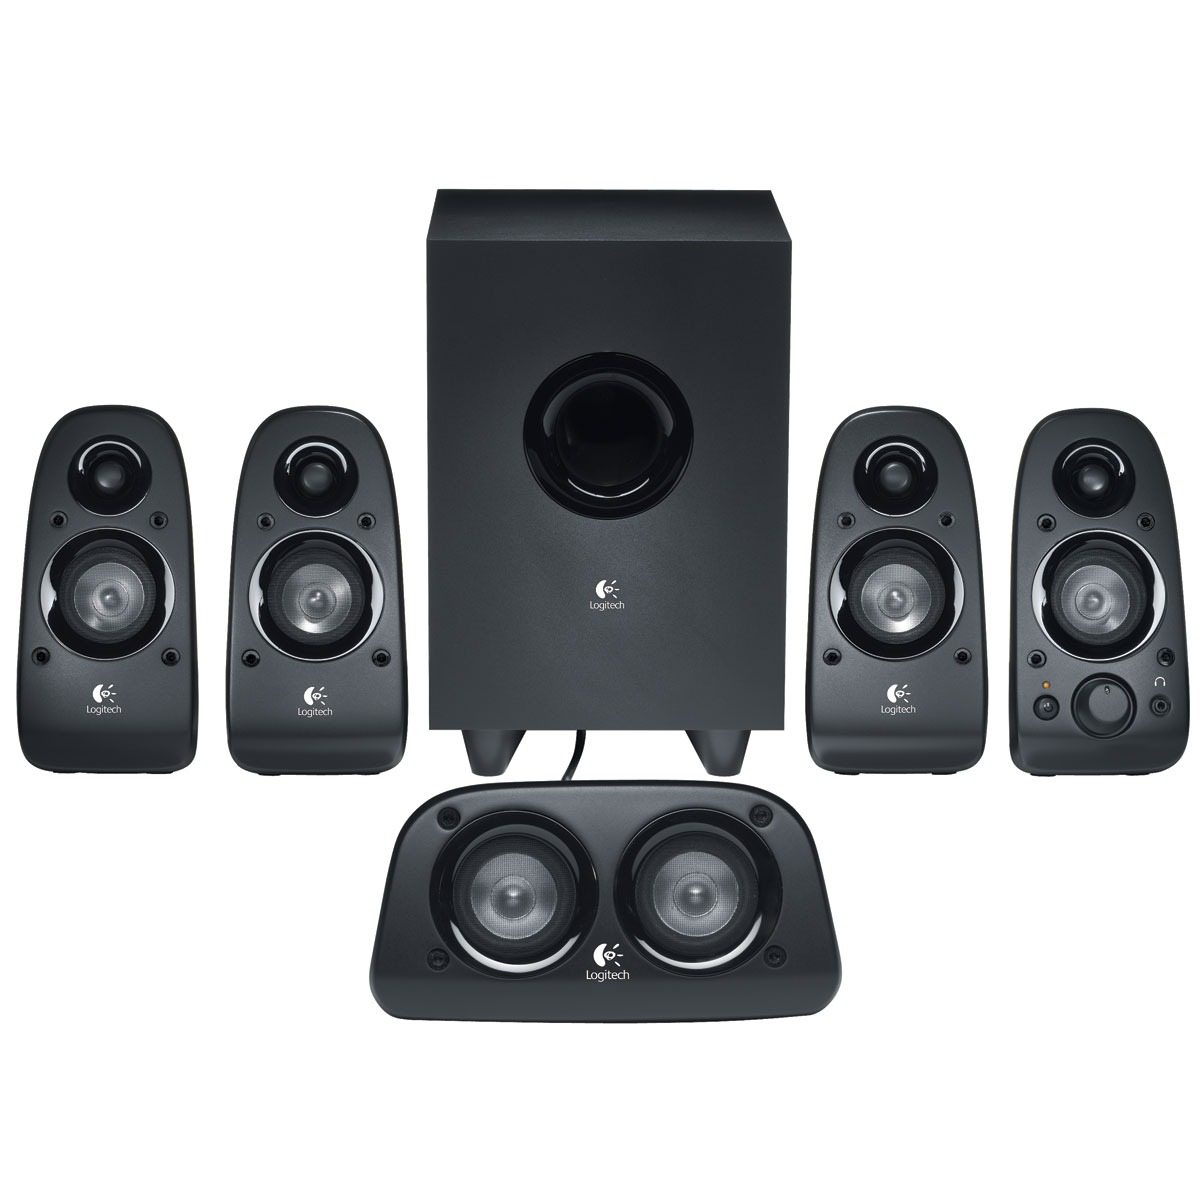 how to connect 5.1 speakers to pc